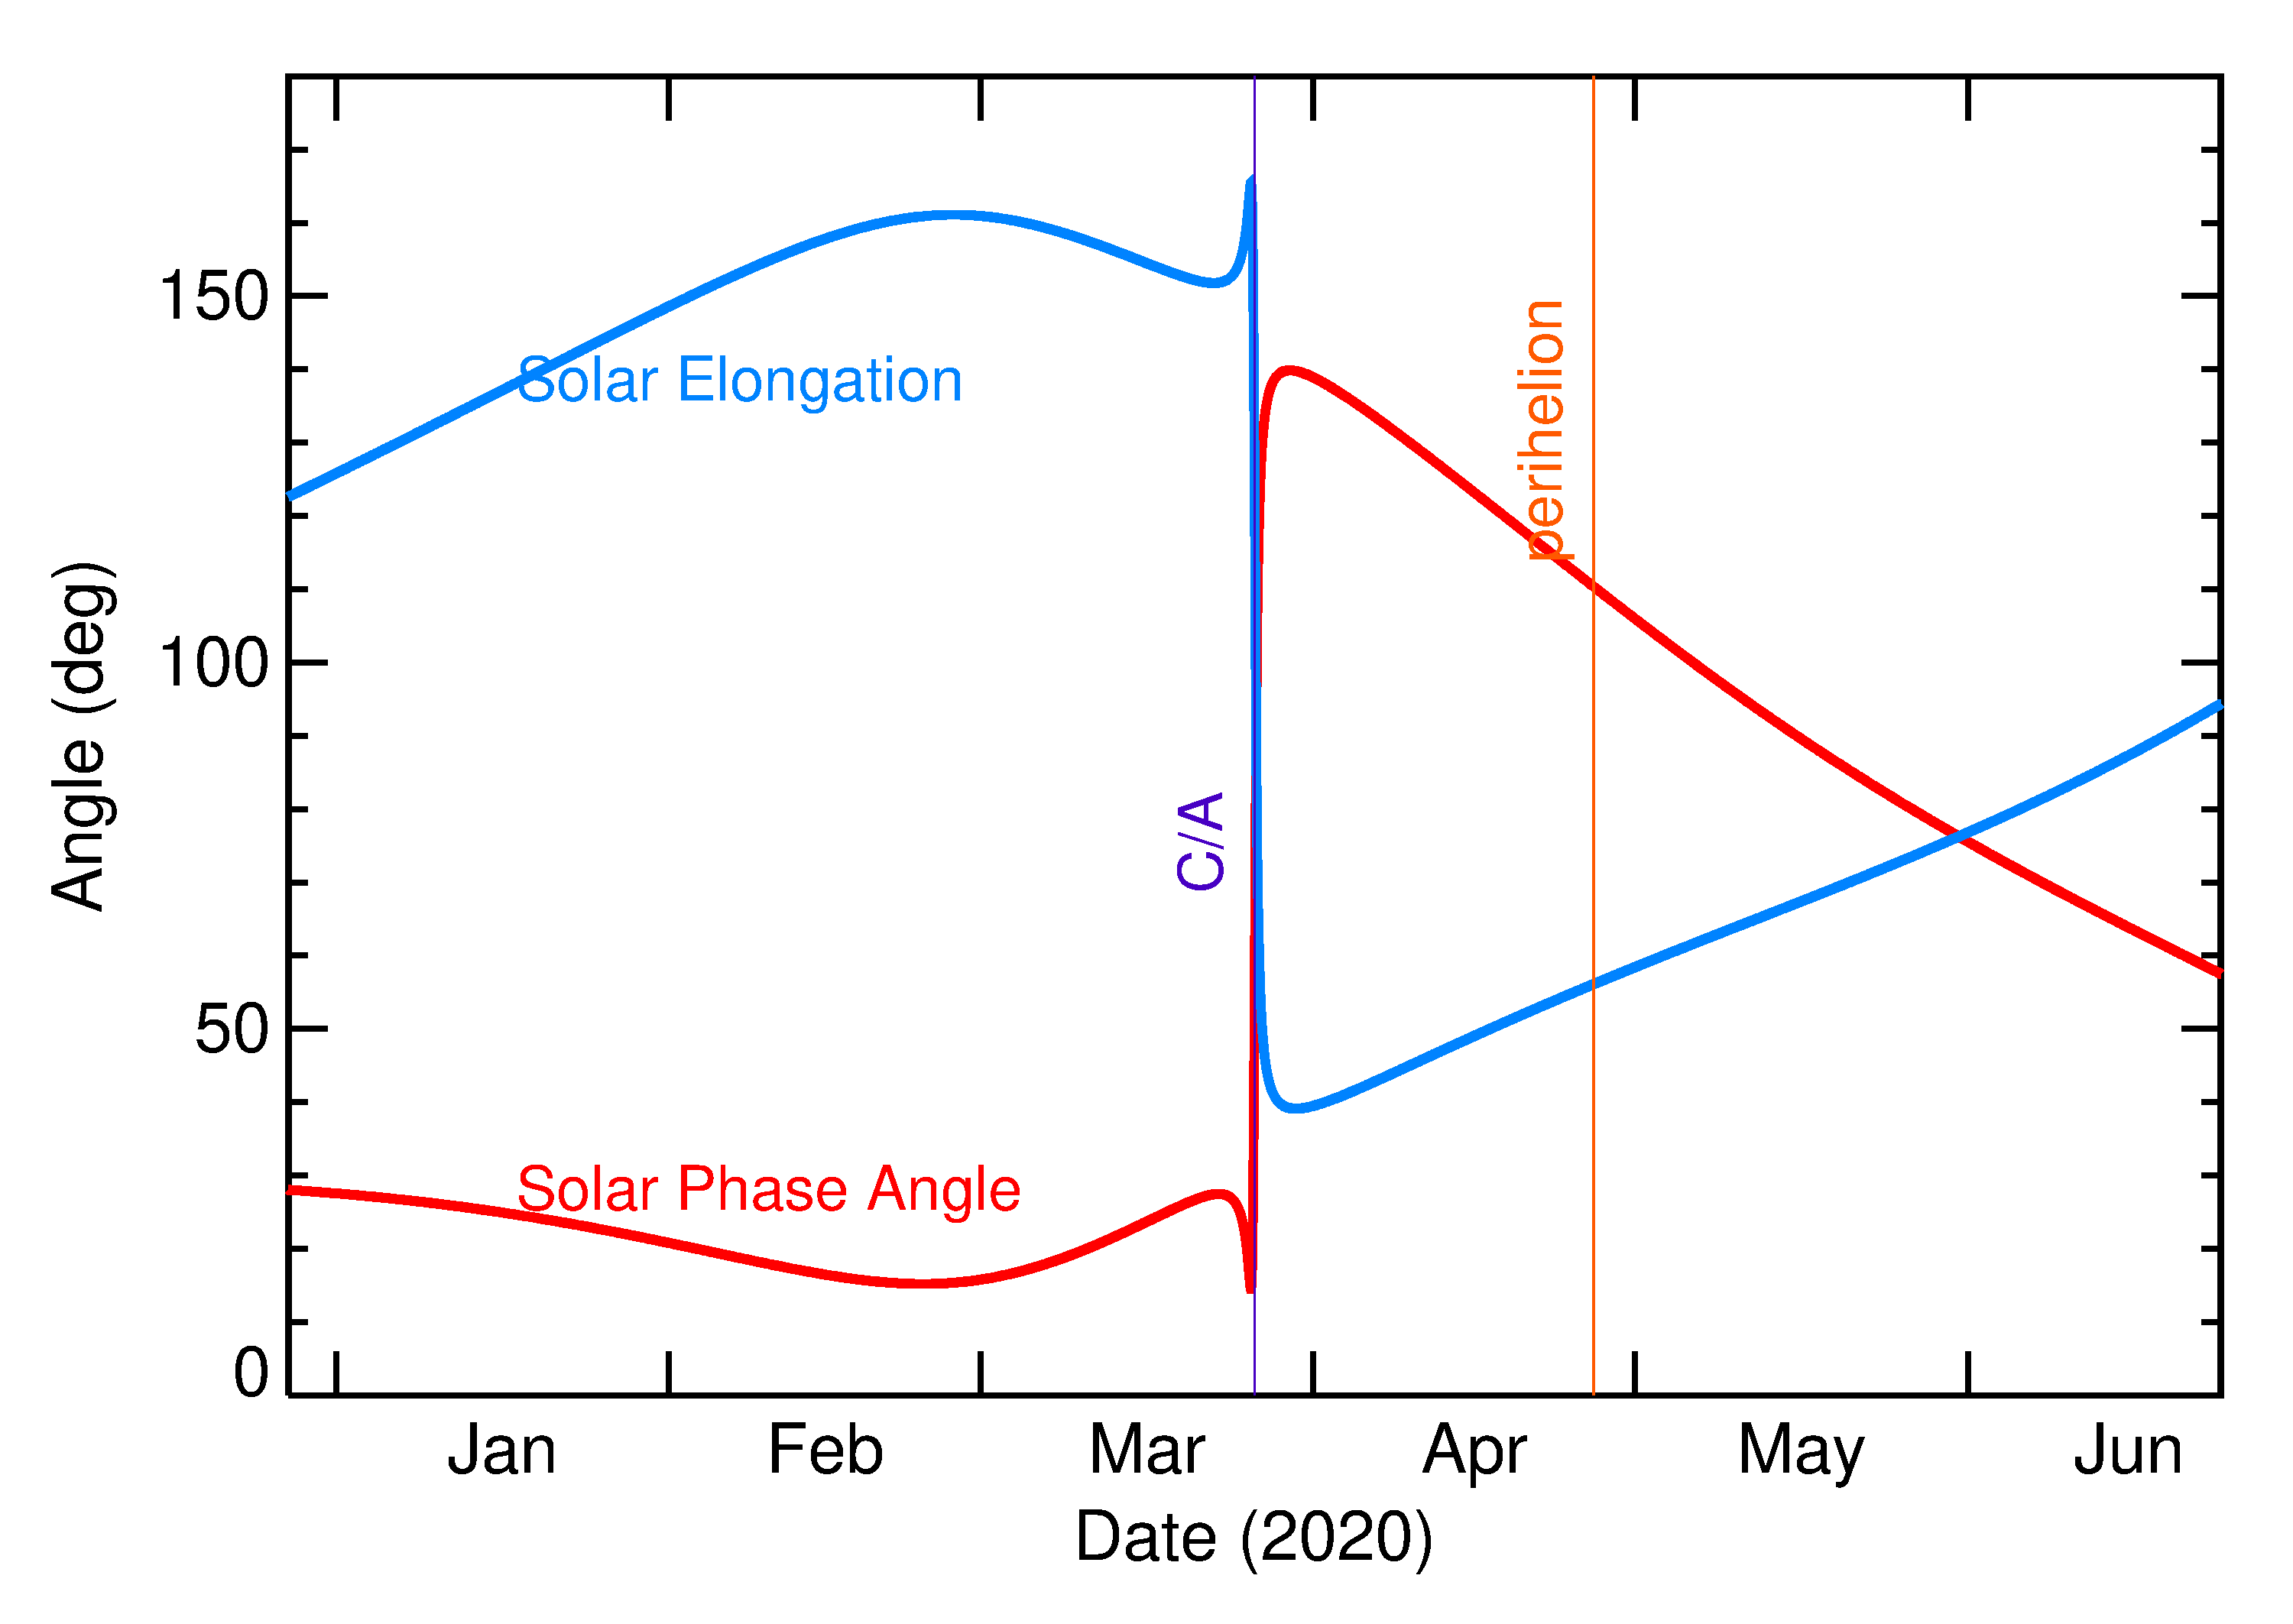 Solar Elongation and Solar Phase Angle of 2020 FJ4 in the months around closest approach